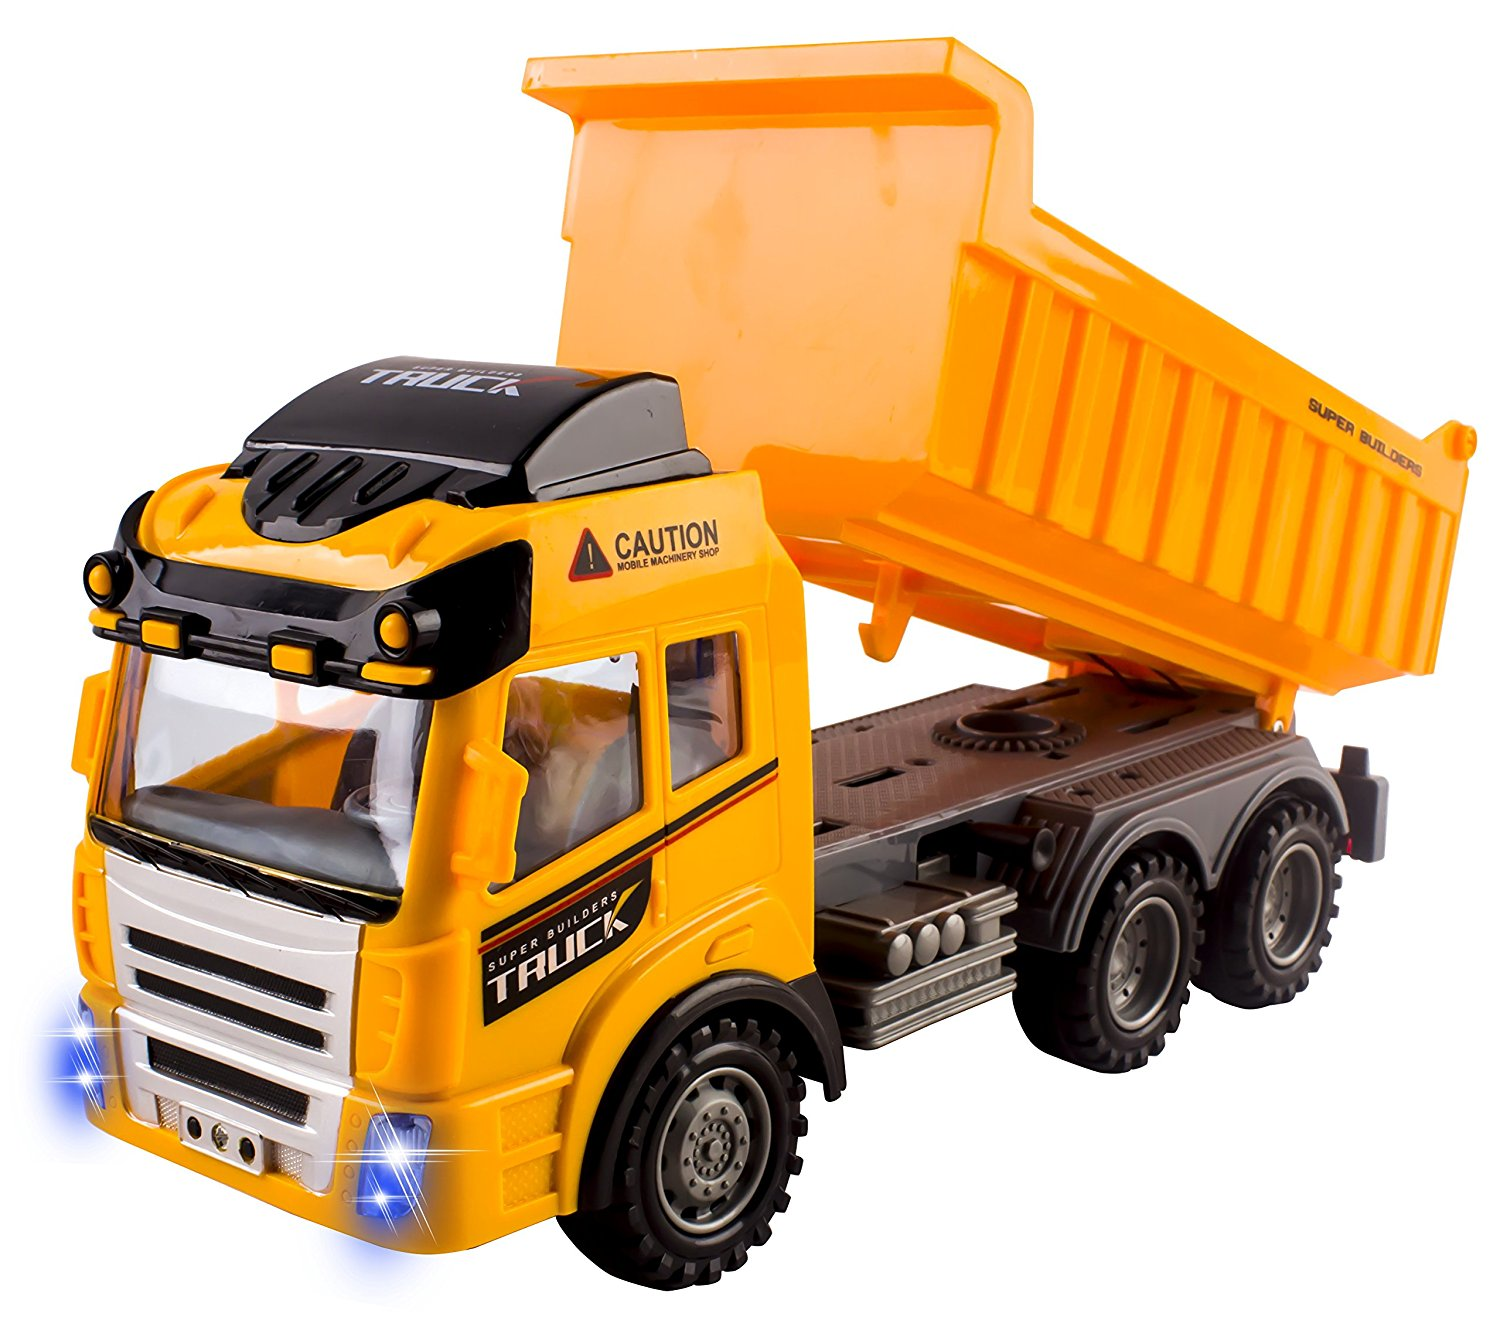 RC Dump Truck Toy Construction Truck Remote Control Truck 4CH Full Function Battery Powered RC Construction Truck Toy